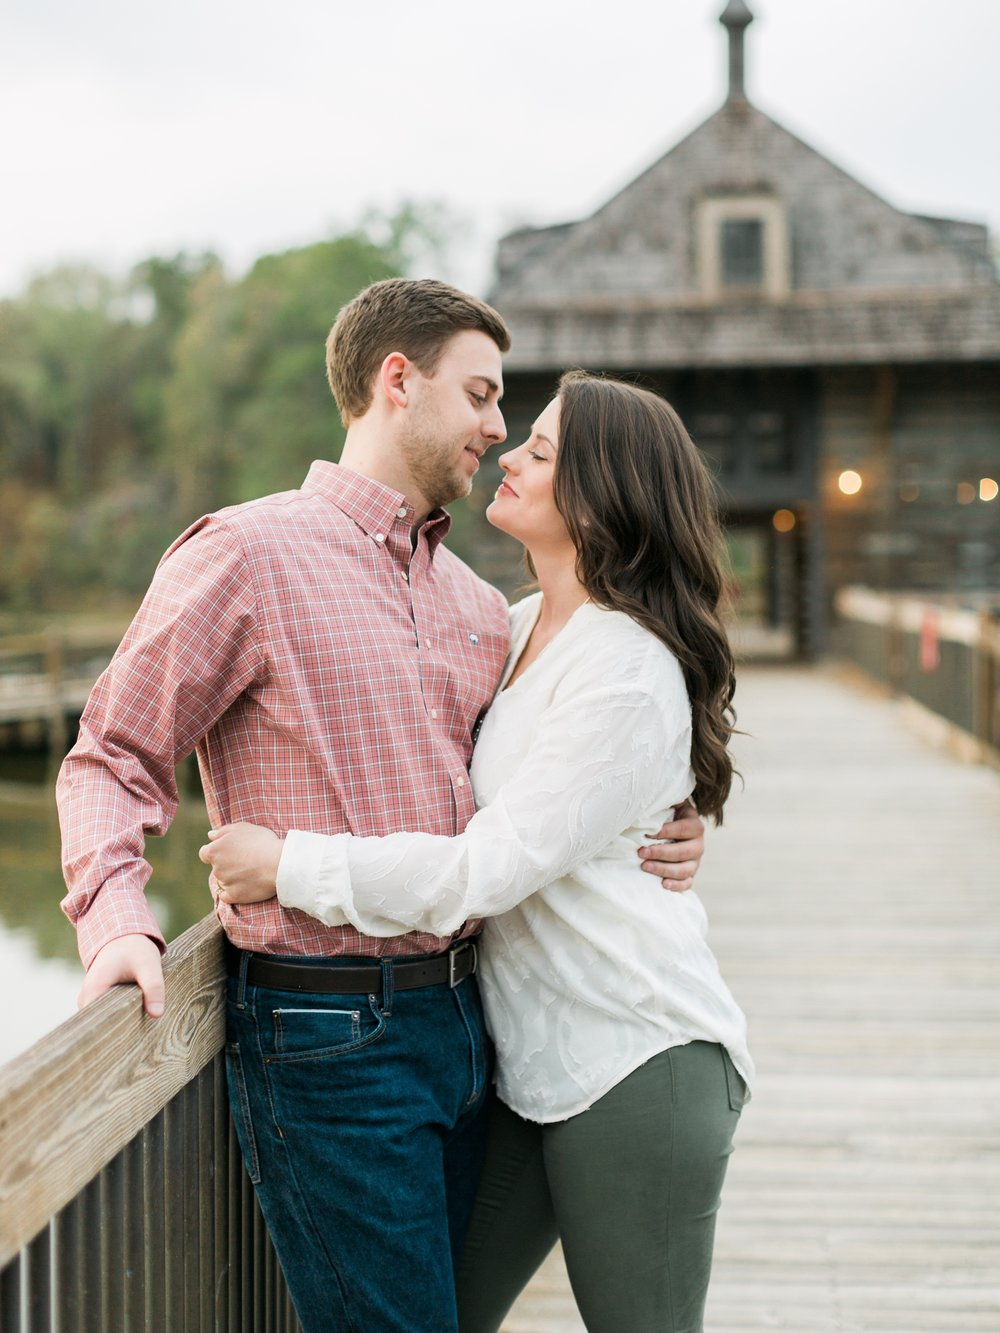 Lake Engagement Session in the Fall